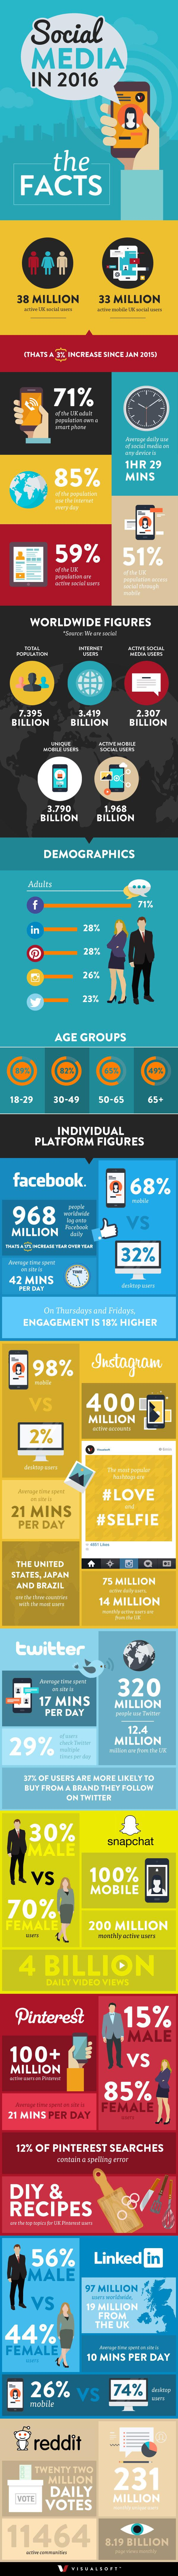 The #Social_Media facts of 2016 #SMM #Infographic